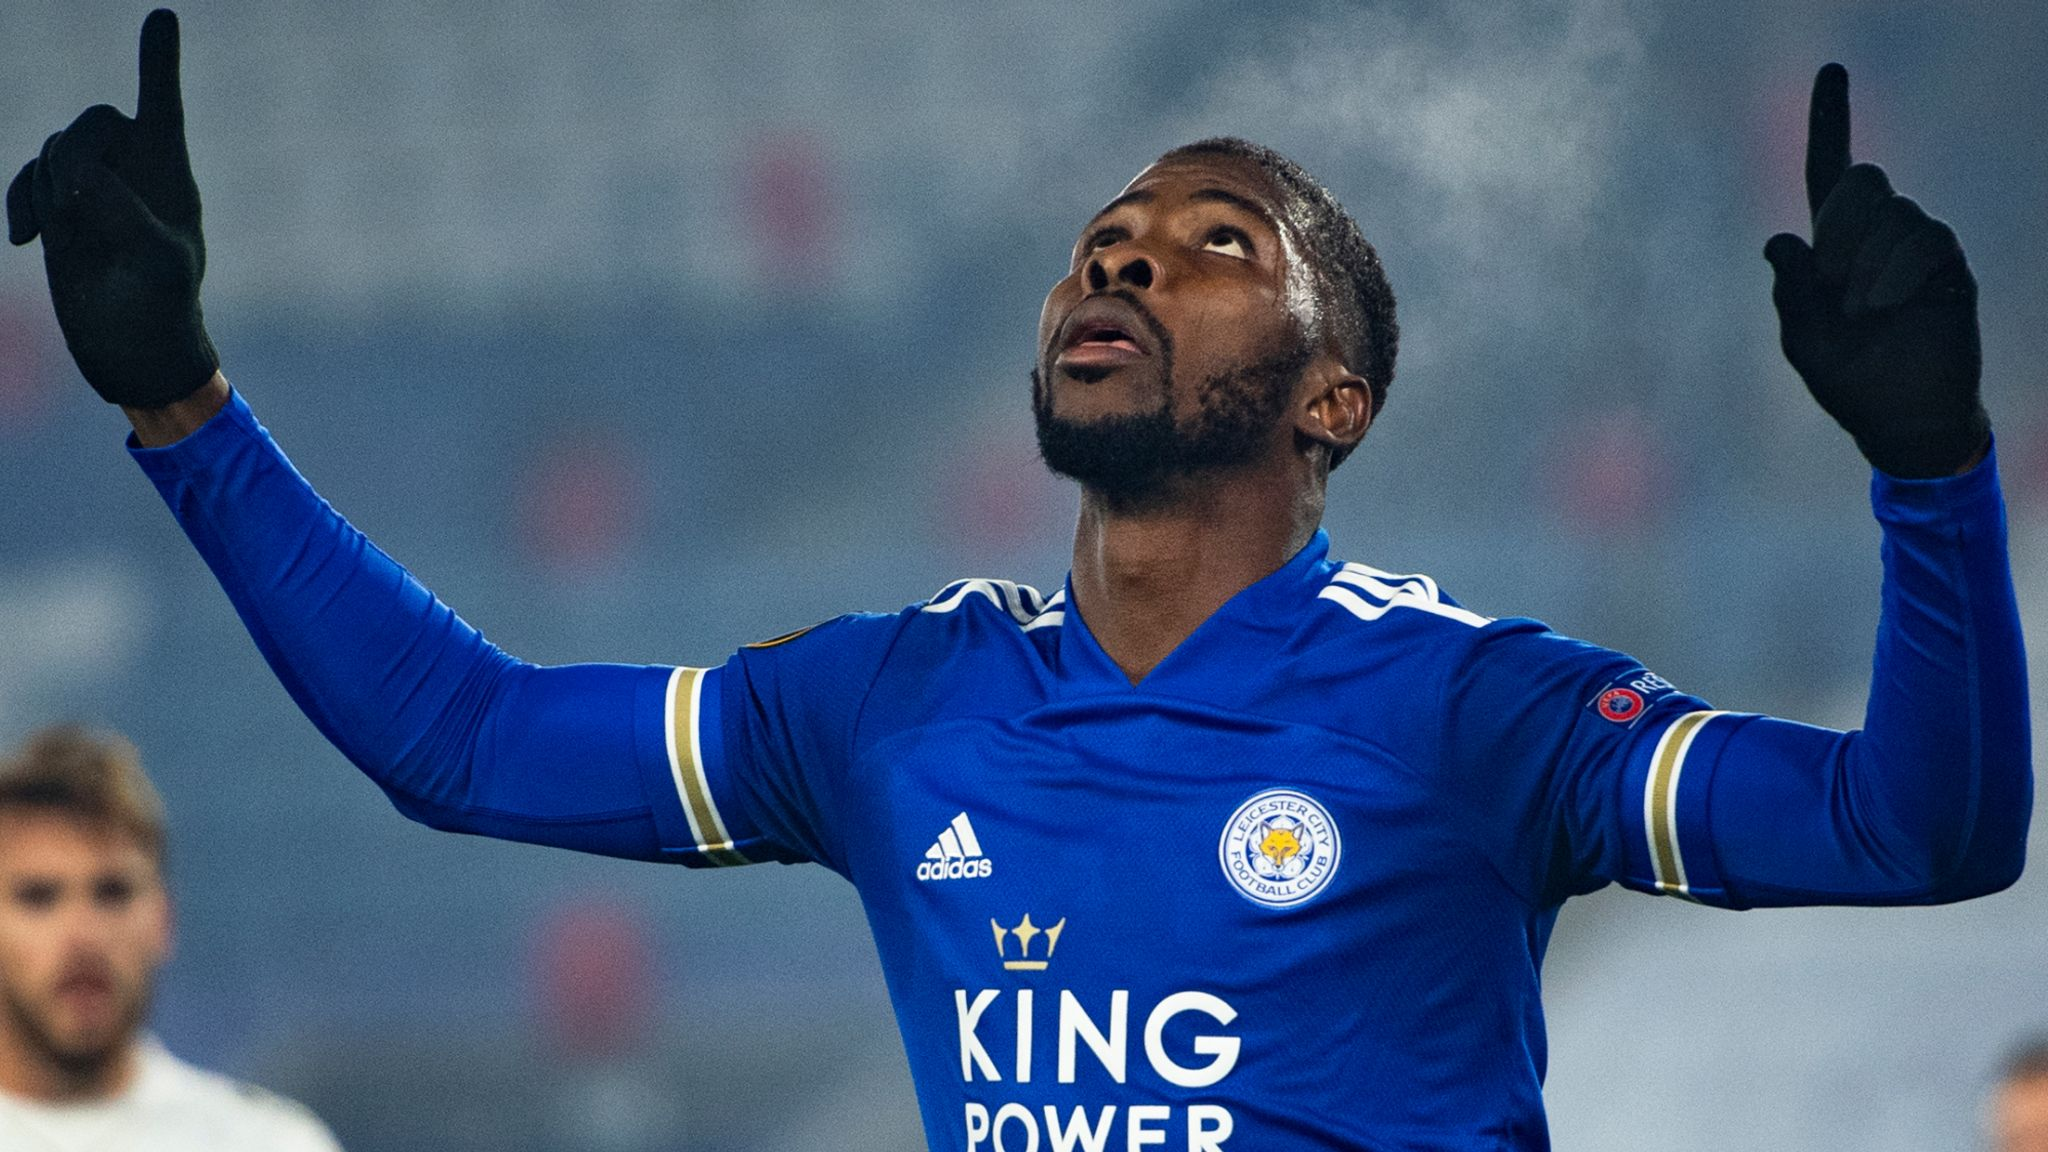 Leicester City 4-0 Braga: Kelechi Iheanacho scores double as Foxes keep up  perfect record in style | Football News | Sky Sports